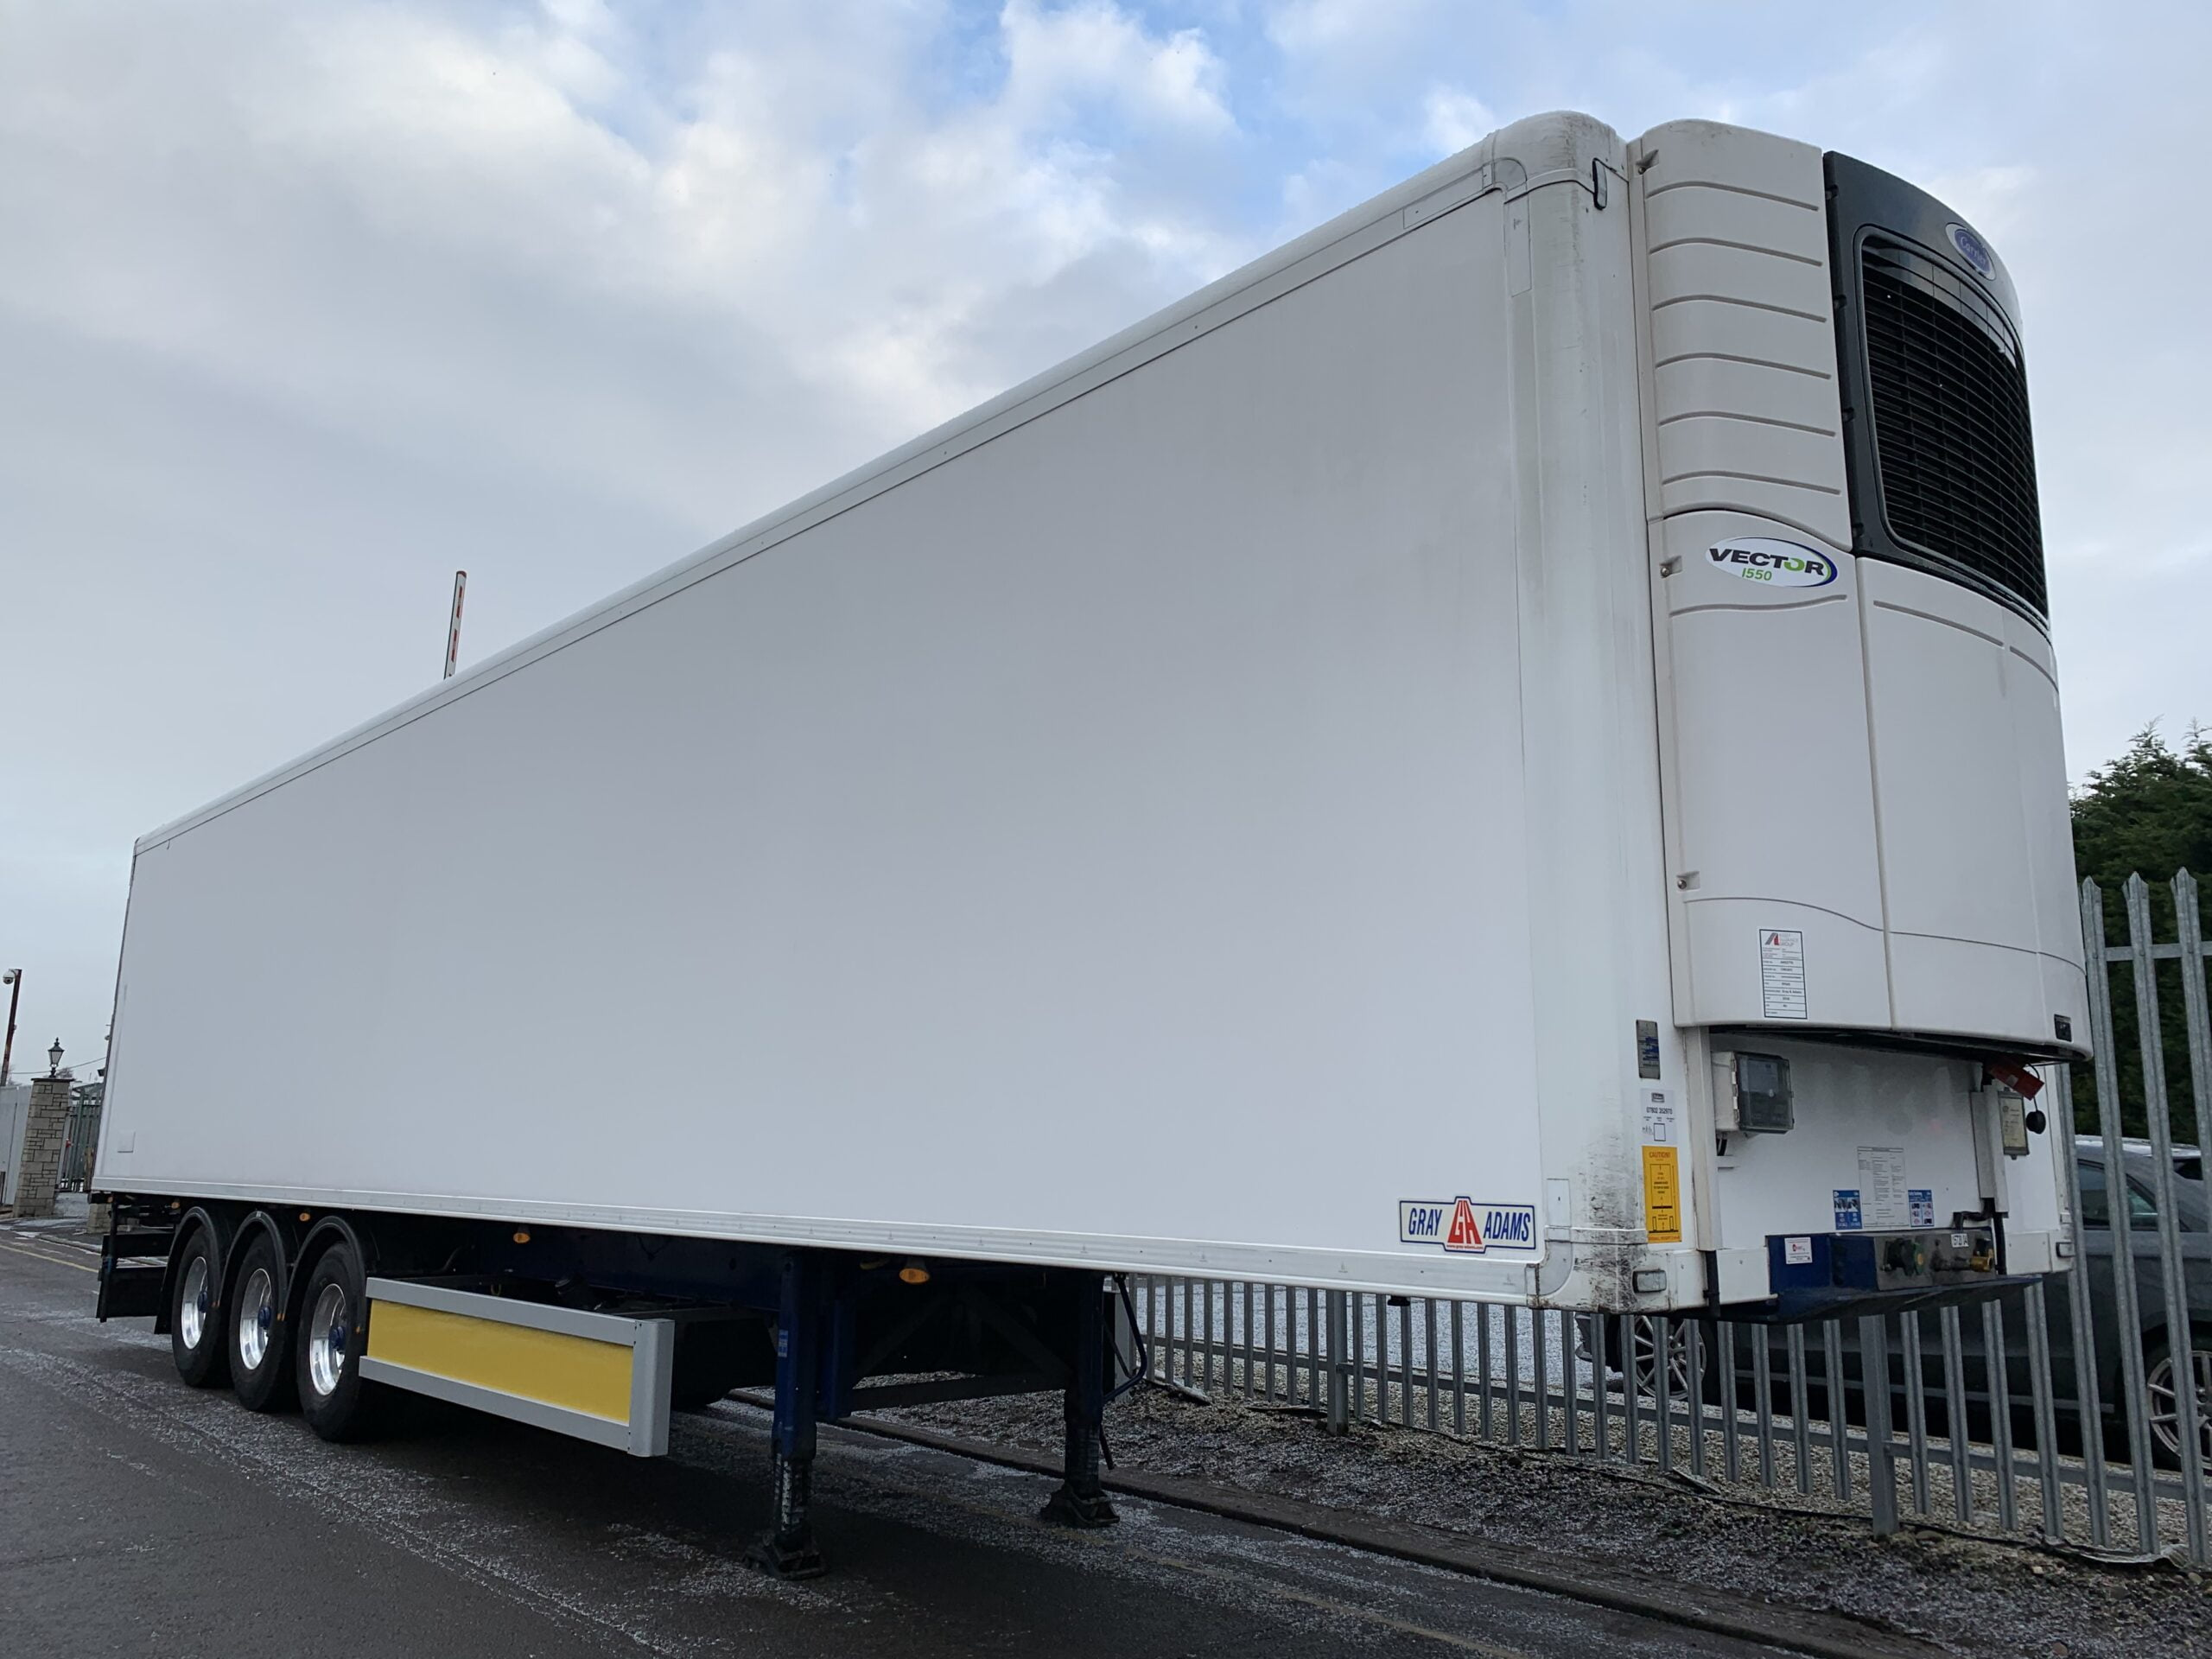 2018 Gray & Adams Single Temp Fridge Trailer, Carrier Vector 1550 Fridge Engine, 4.25m External Height, 2.59m Internal Height, BPW Axles, Drum Brakes, Chequer Plate Floor, Barn Doors, Raise Lower Valve Facility, Alloy Wheels.